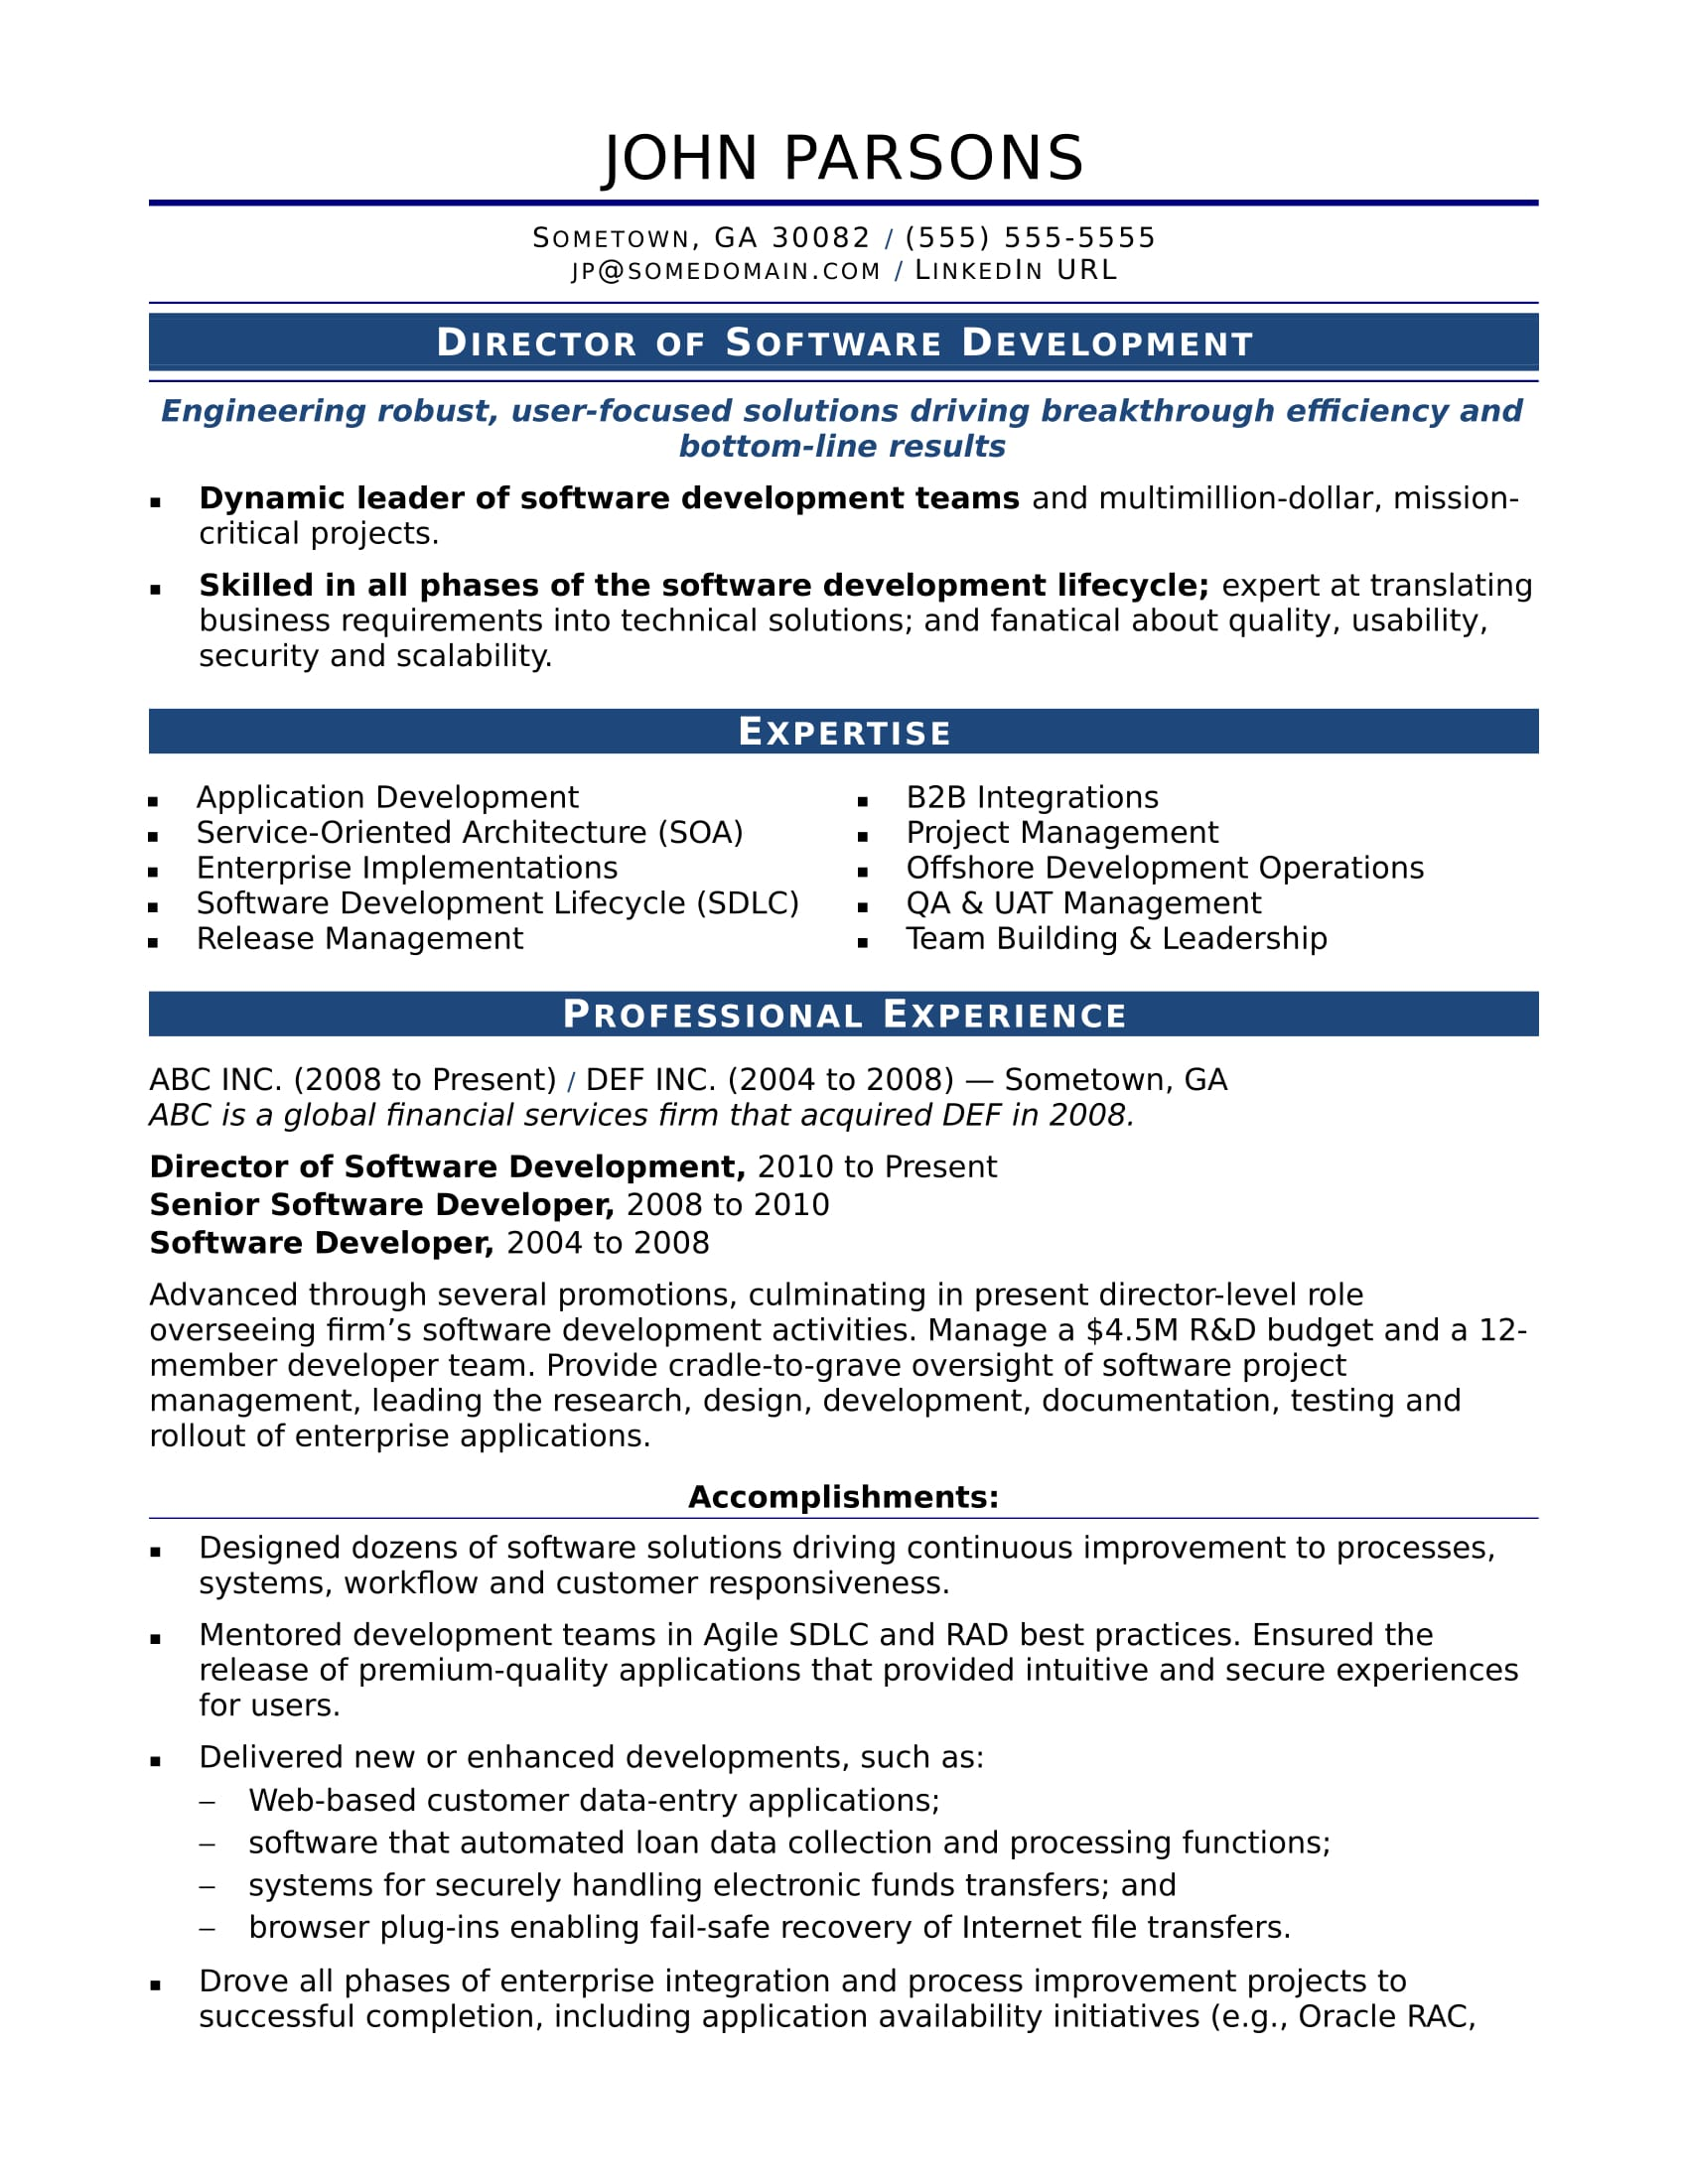 Sample Resume For An Experienced IT Developer  Software Developer Resume Sample